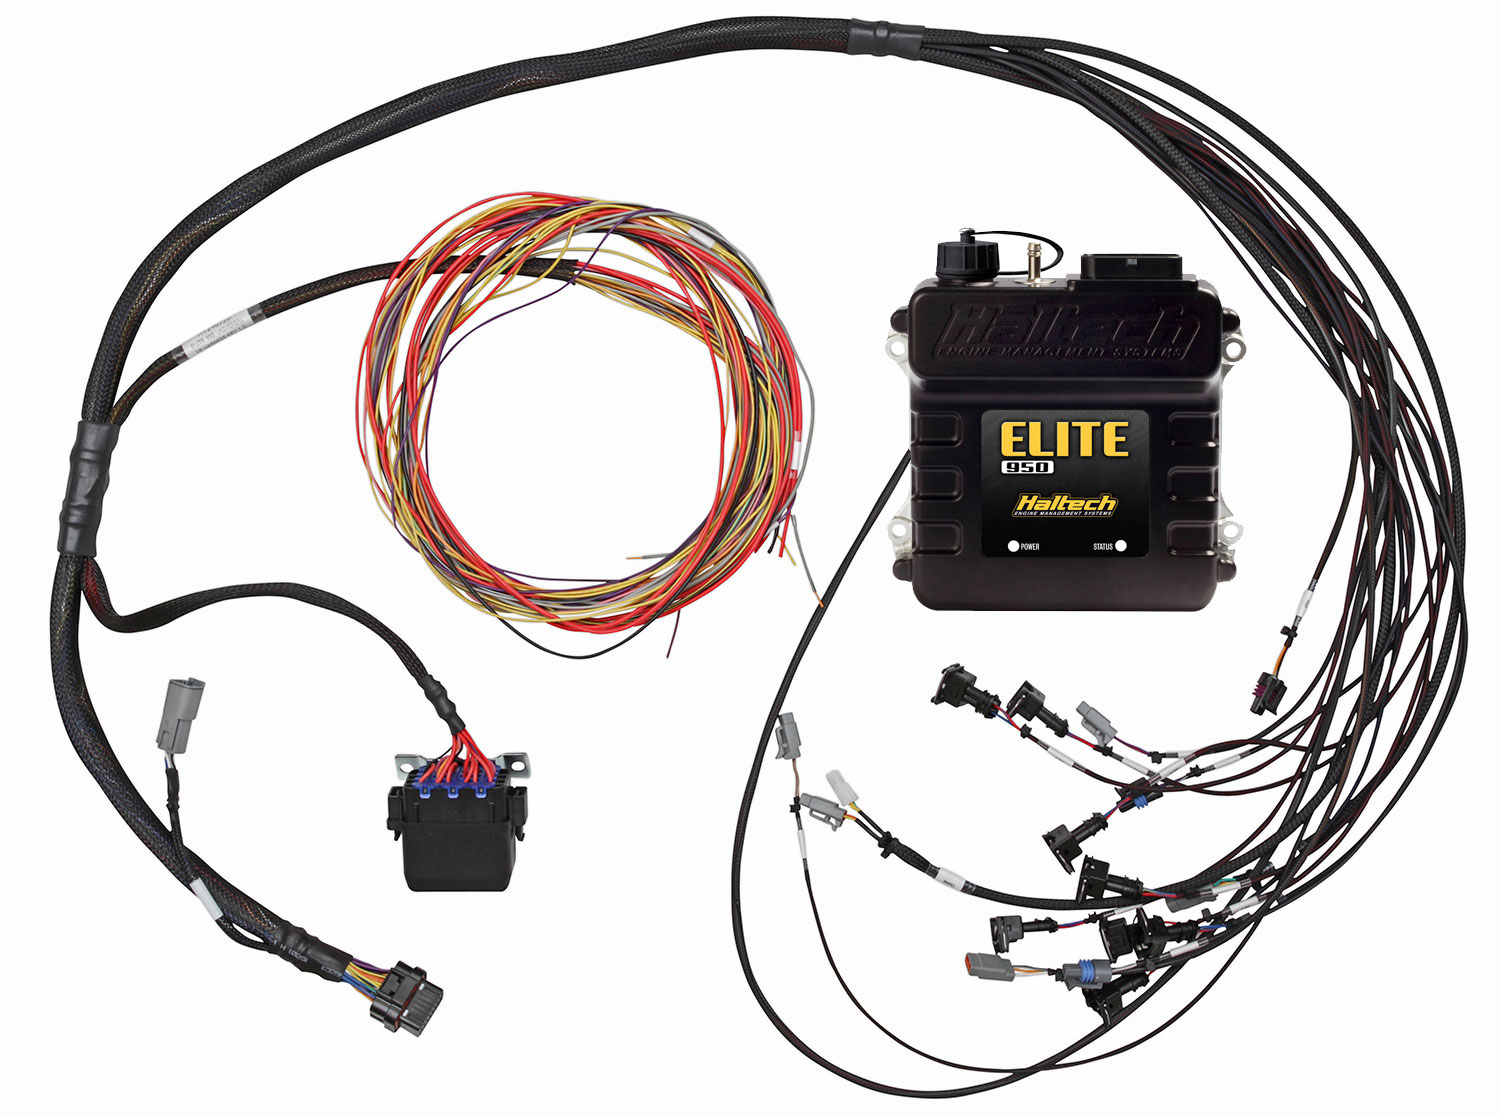 Haltech Engine Management Systems Ls1 Archives Wiring Harness Kit For 5 0 Efi 2 Elite 950 Ecu Ls2 3 Terminated